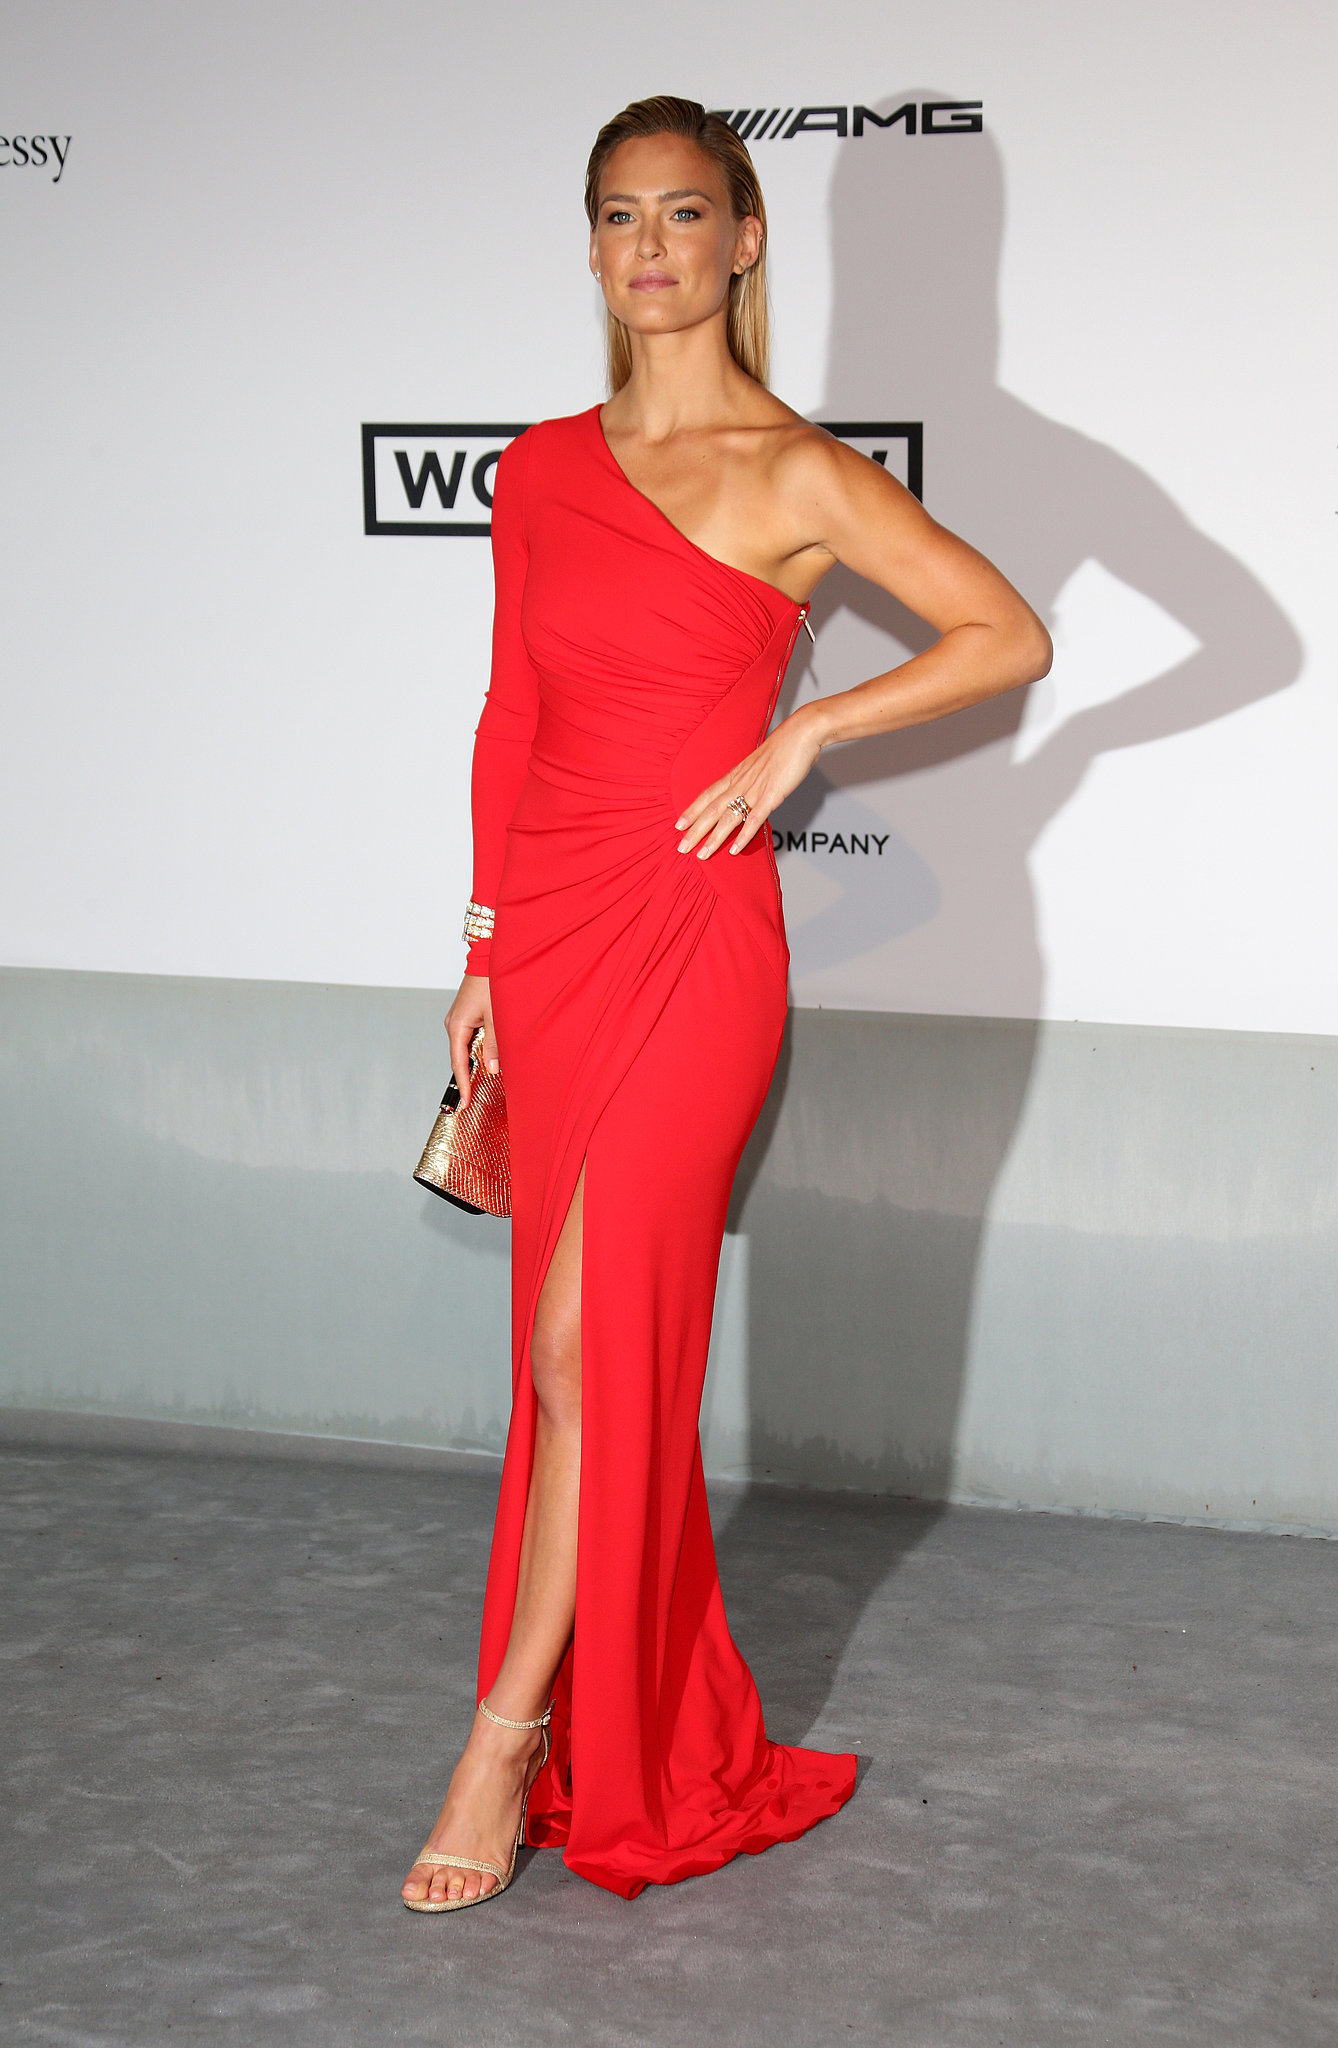 Bar Refaeli wore red to the event.